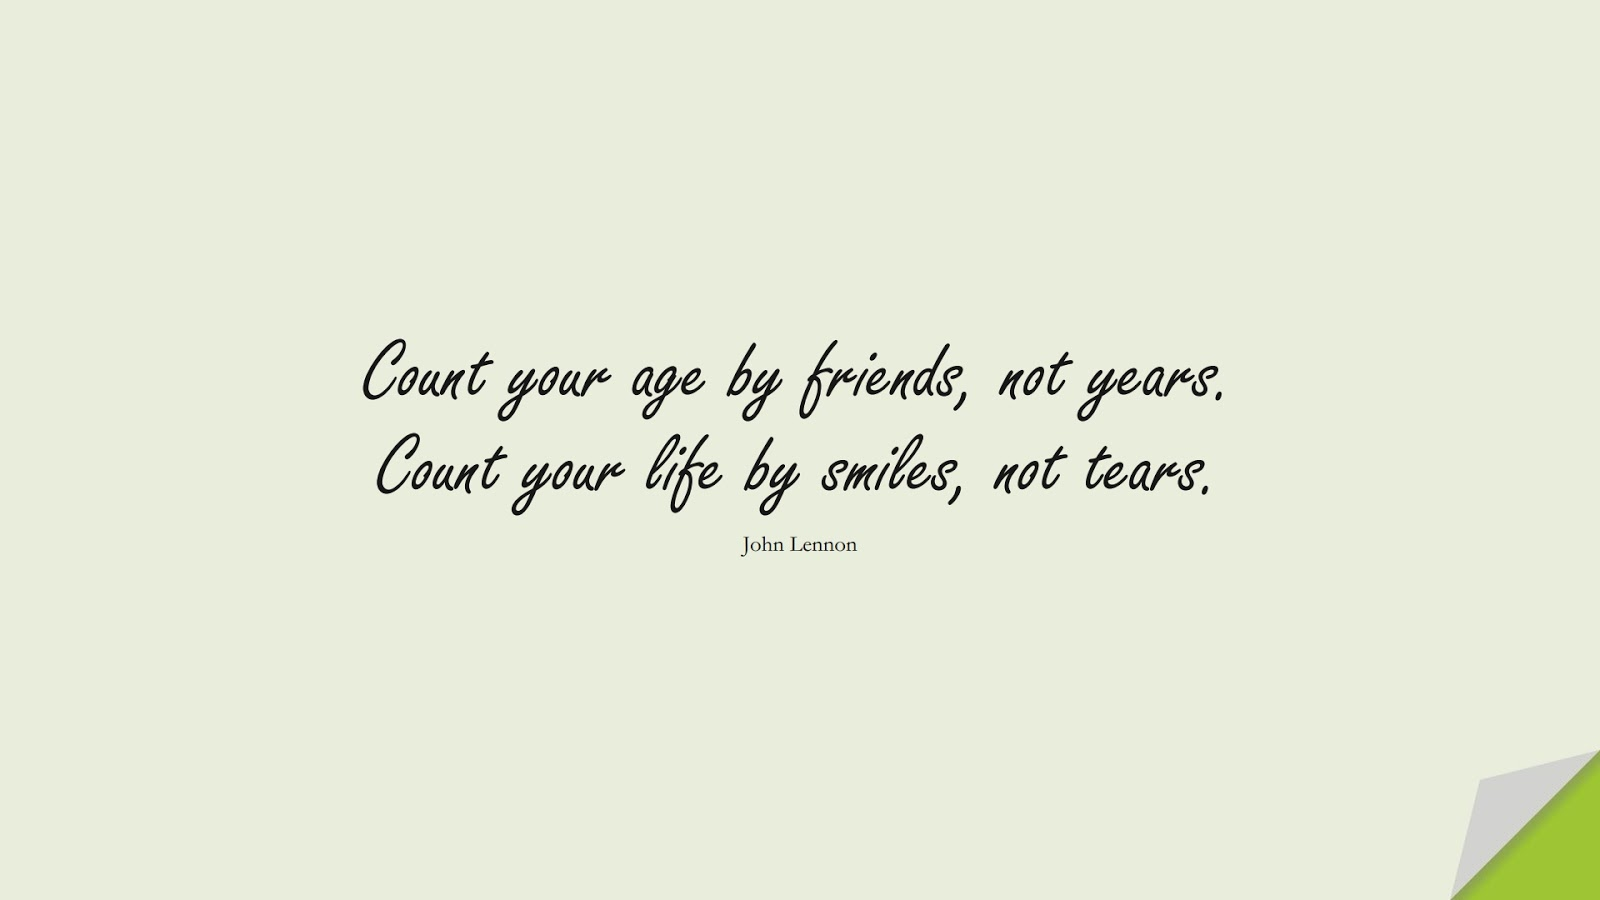 Count your age by friends, not years. Count your life by smiles, not tears. (John Lennon);  #LifeQuotes